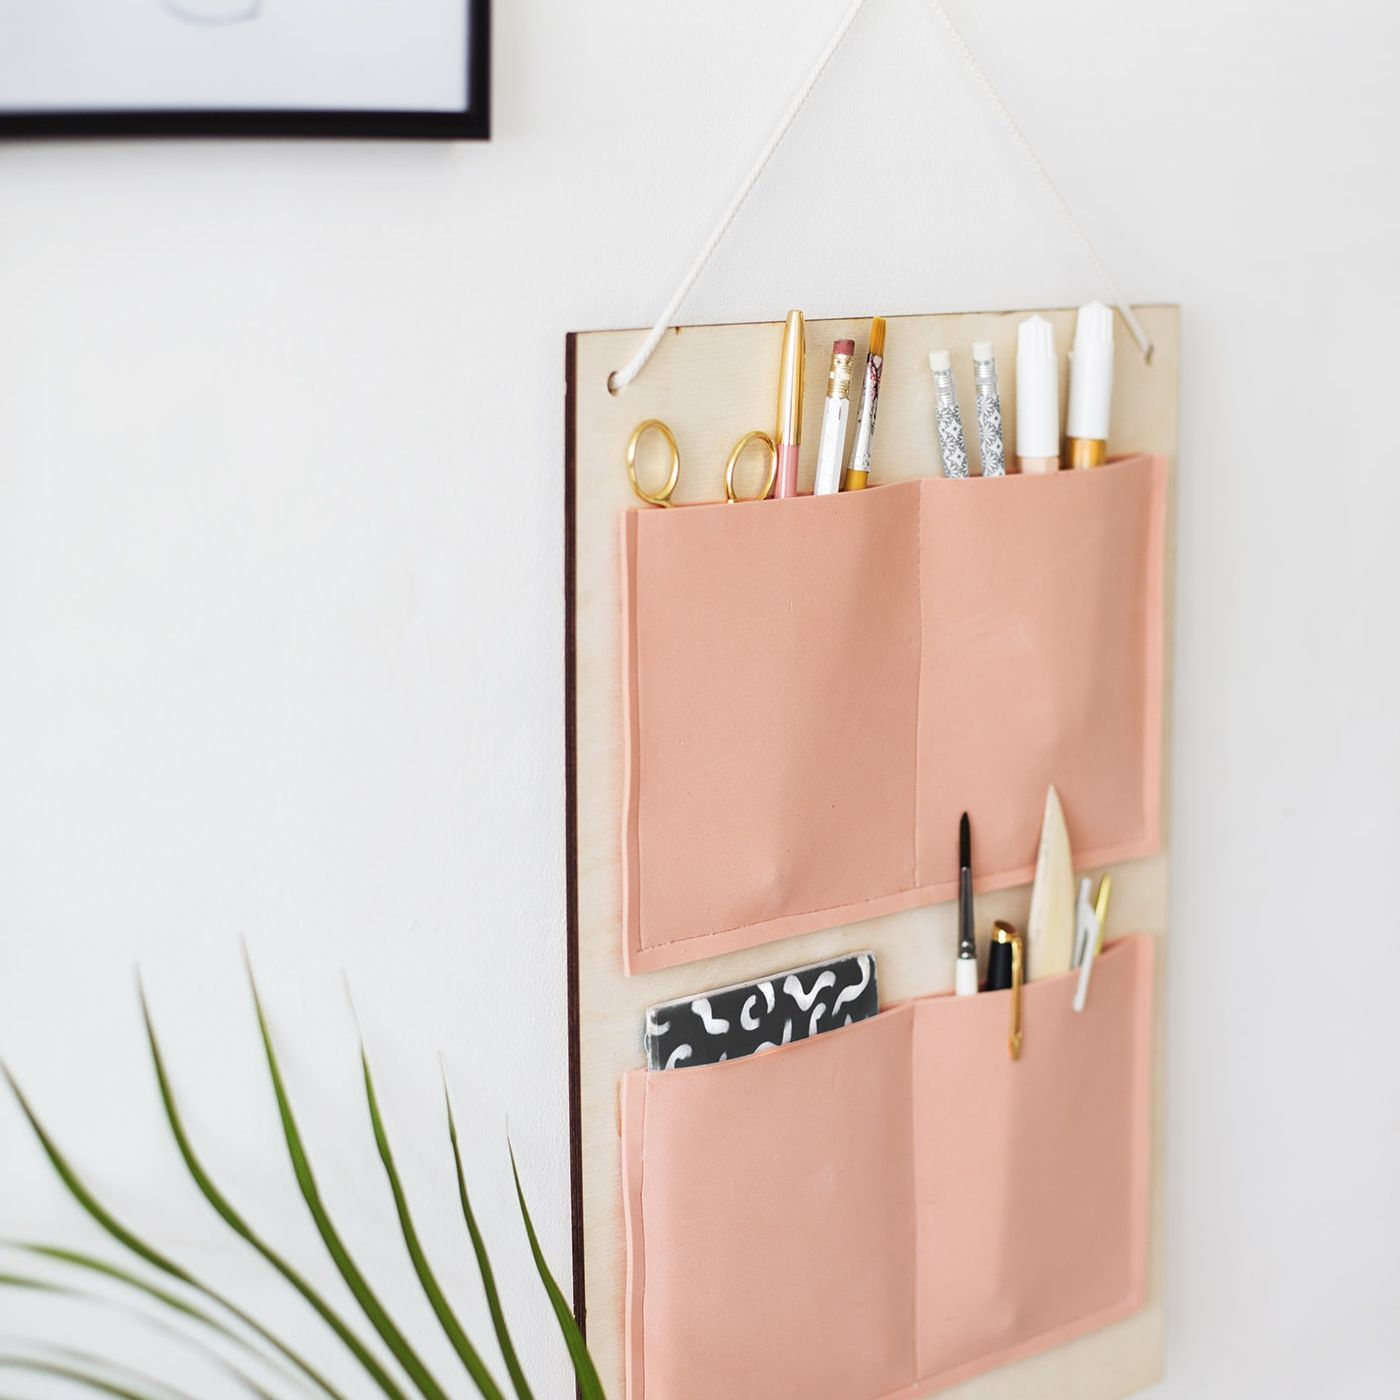 Modern wall organizer with peach colored pockets hanging by art and a plant